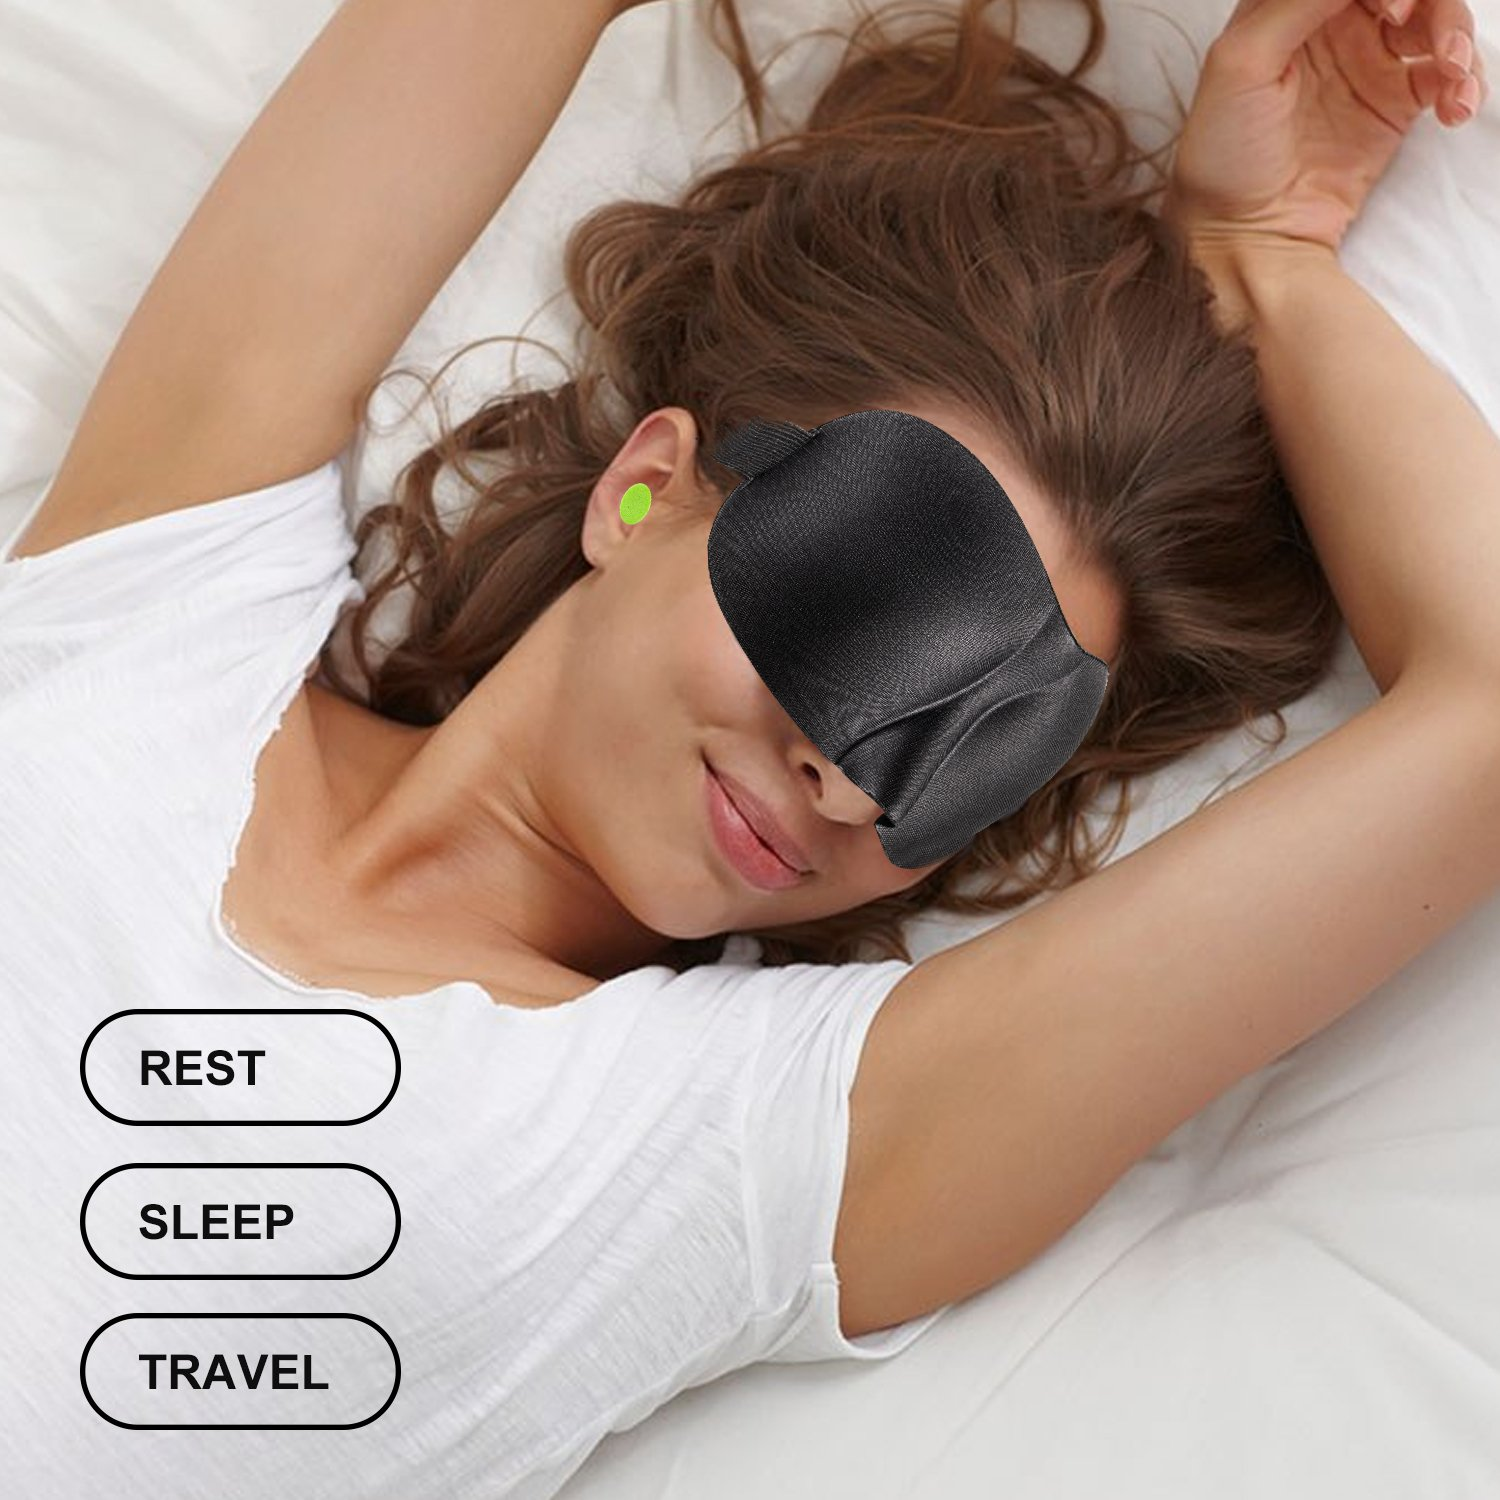 SLDHR 3D Comfortable Sleep Mask 100% Silk | Super Soft Eyes Sleeping Goggles | Perfect for Travelling, Nap, Mediation or Yoga, with Ear Plugs, Portable Case